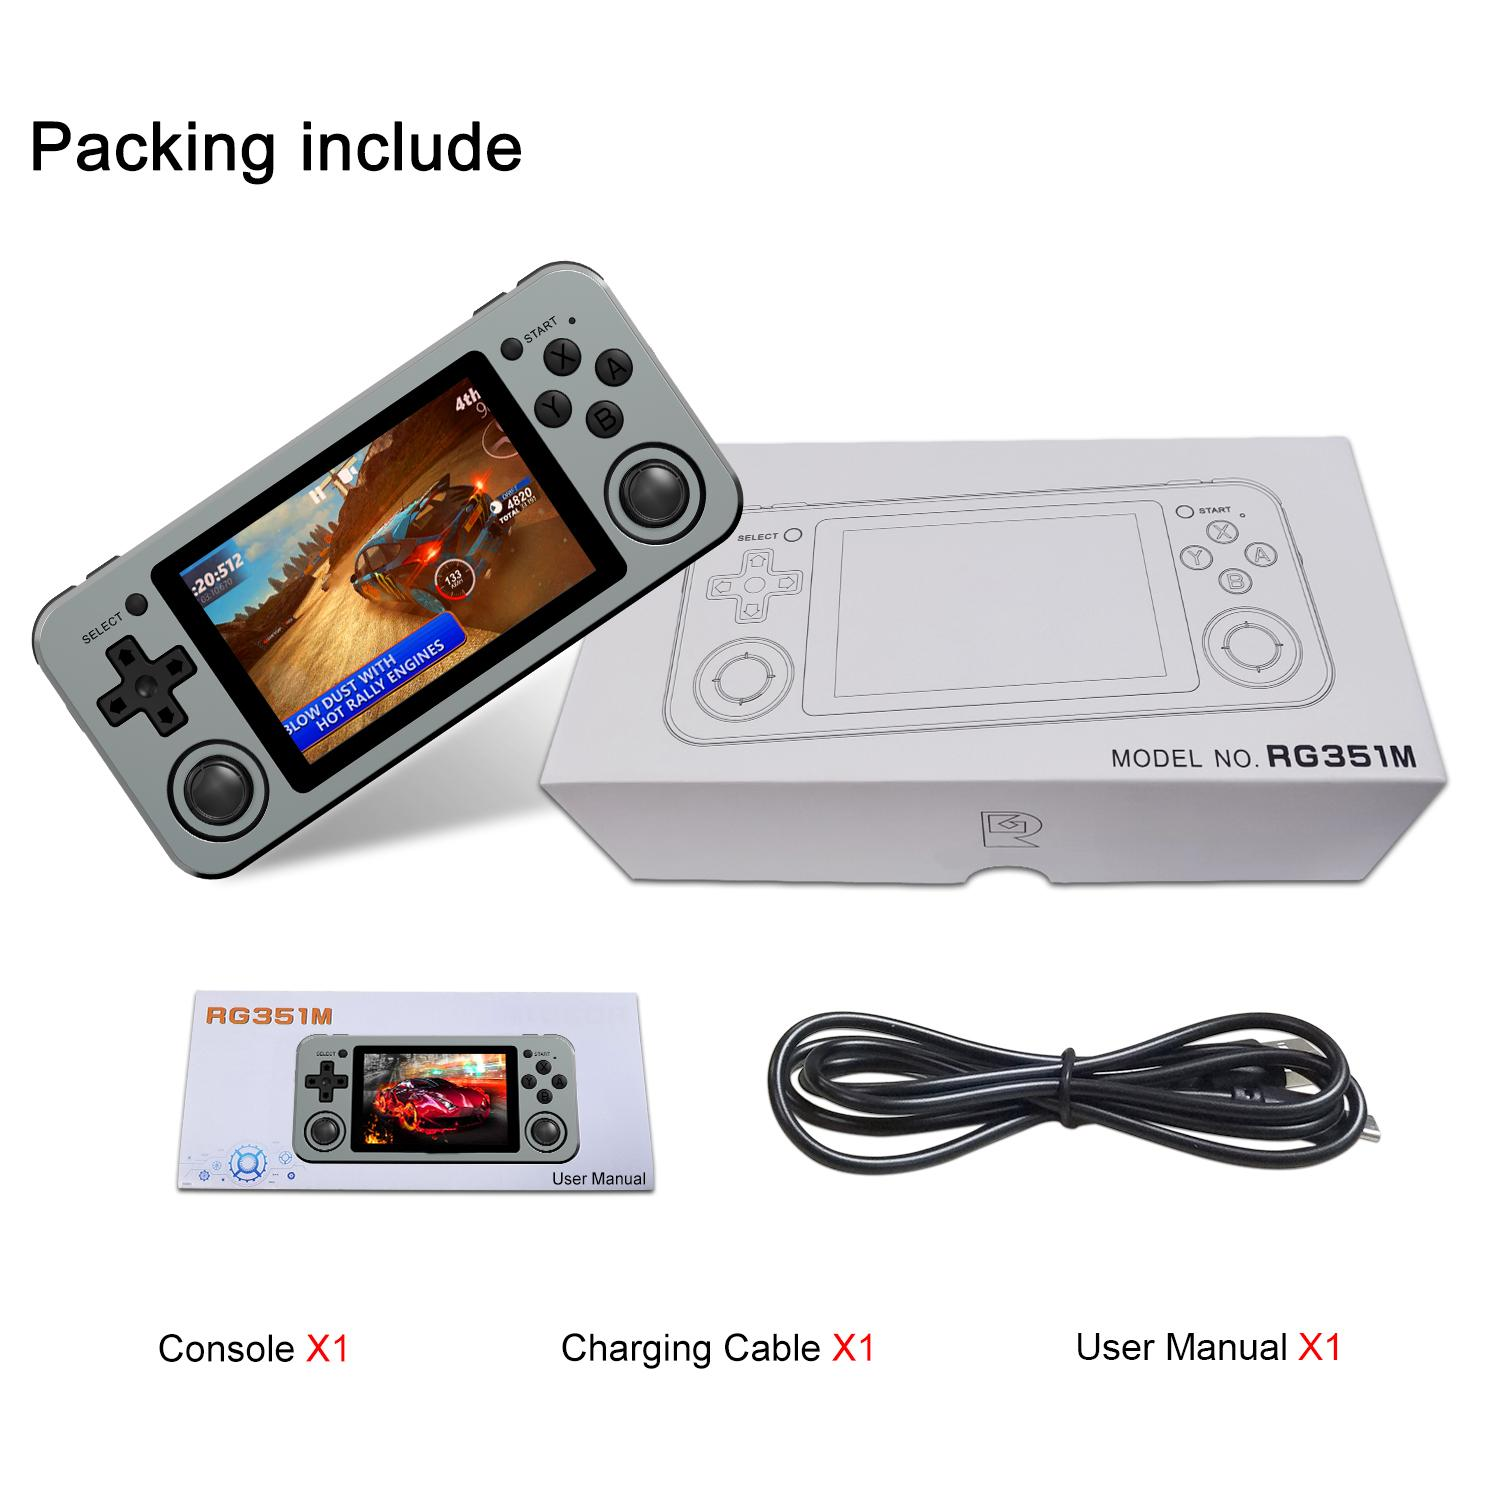 Merkts RG351P Retro Game Console,Portable Open Source System Video Game Handheld 3.5-inch IPS Screen Game Console,English Version 64G,Black